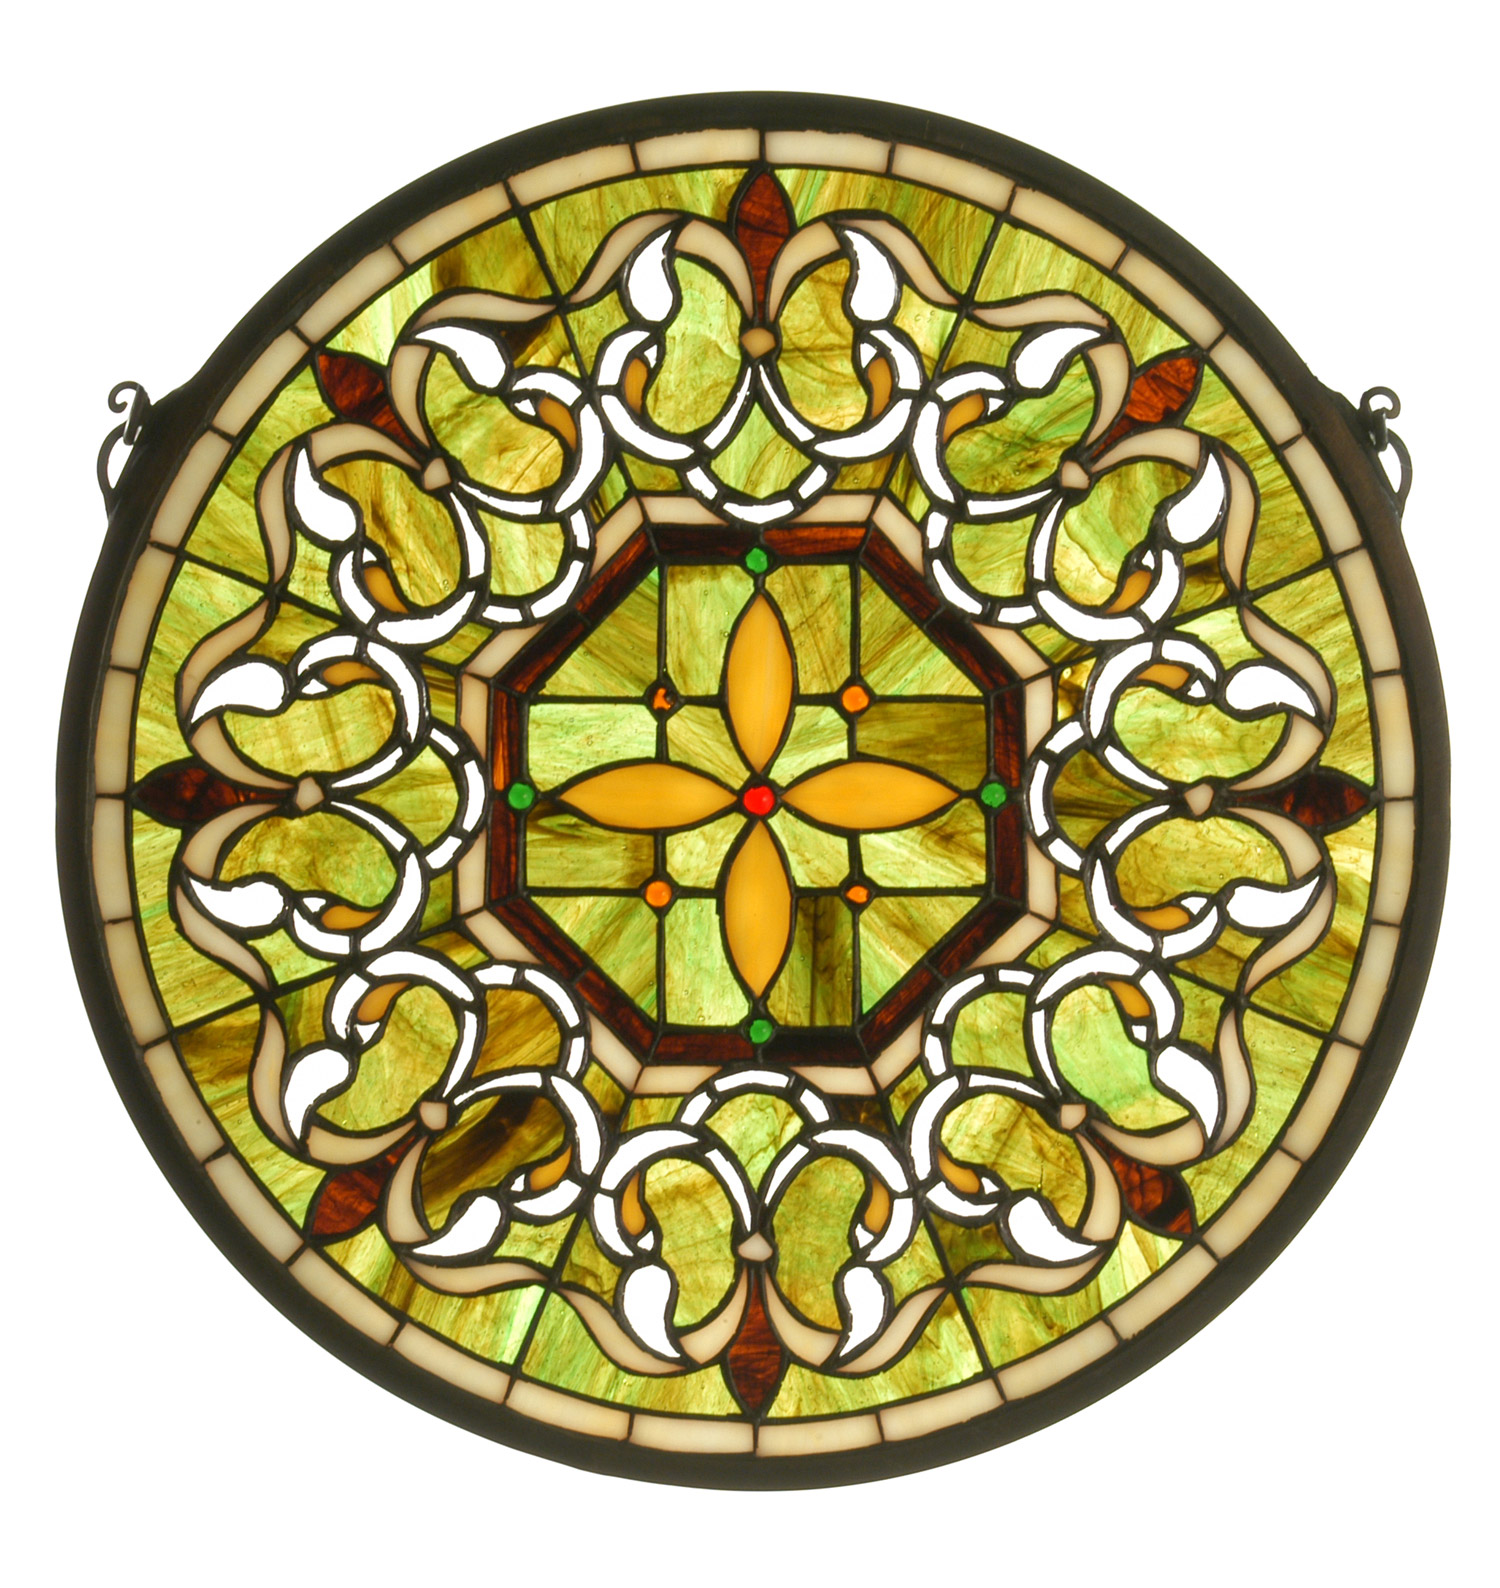 saint file zanesville rose medallion window nicholas tower ivory ohio glass stained wiki church catholic